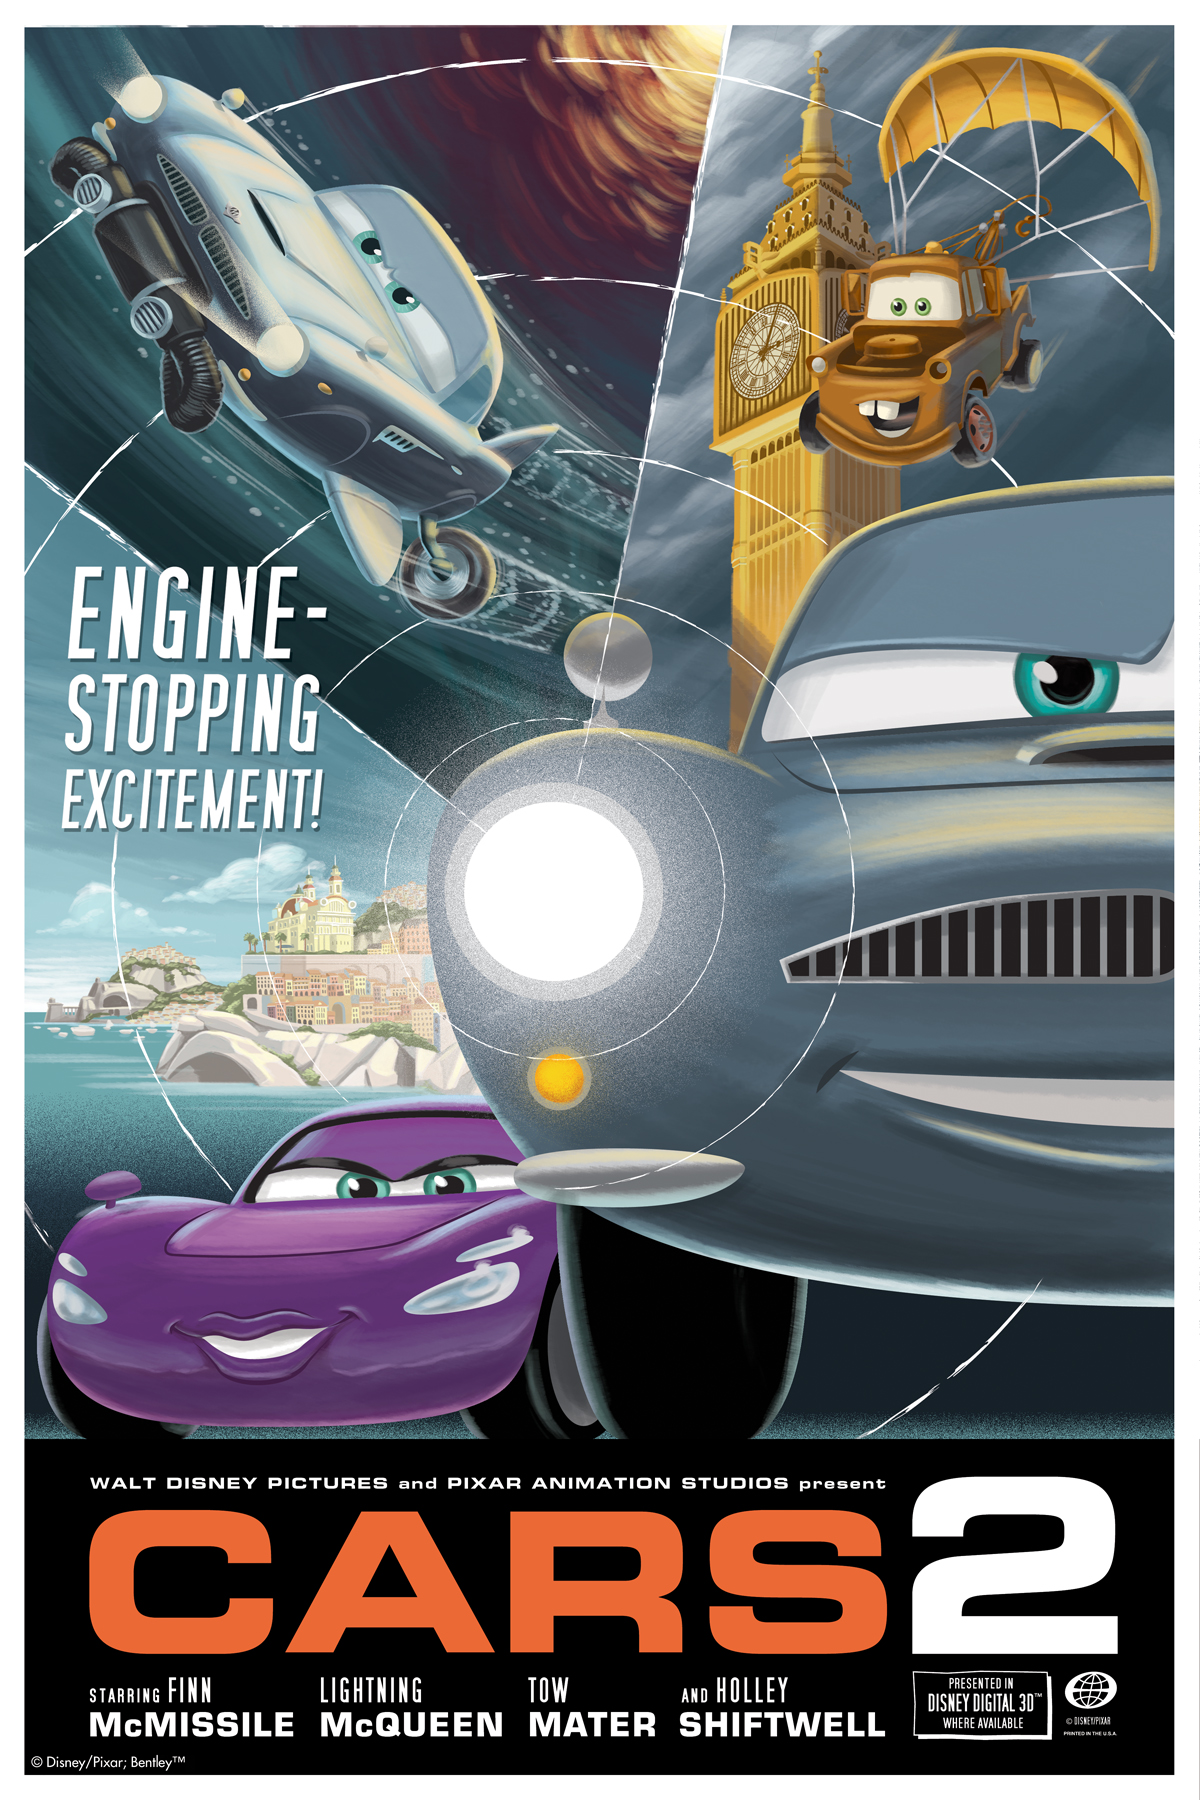 New International Cars 2 Retro Posters Released